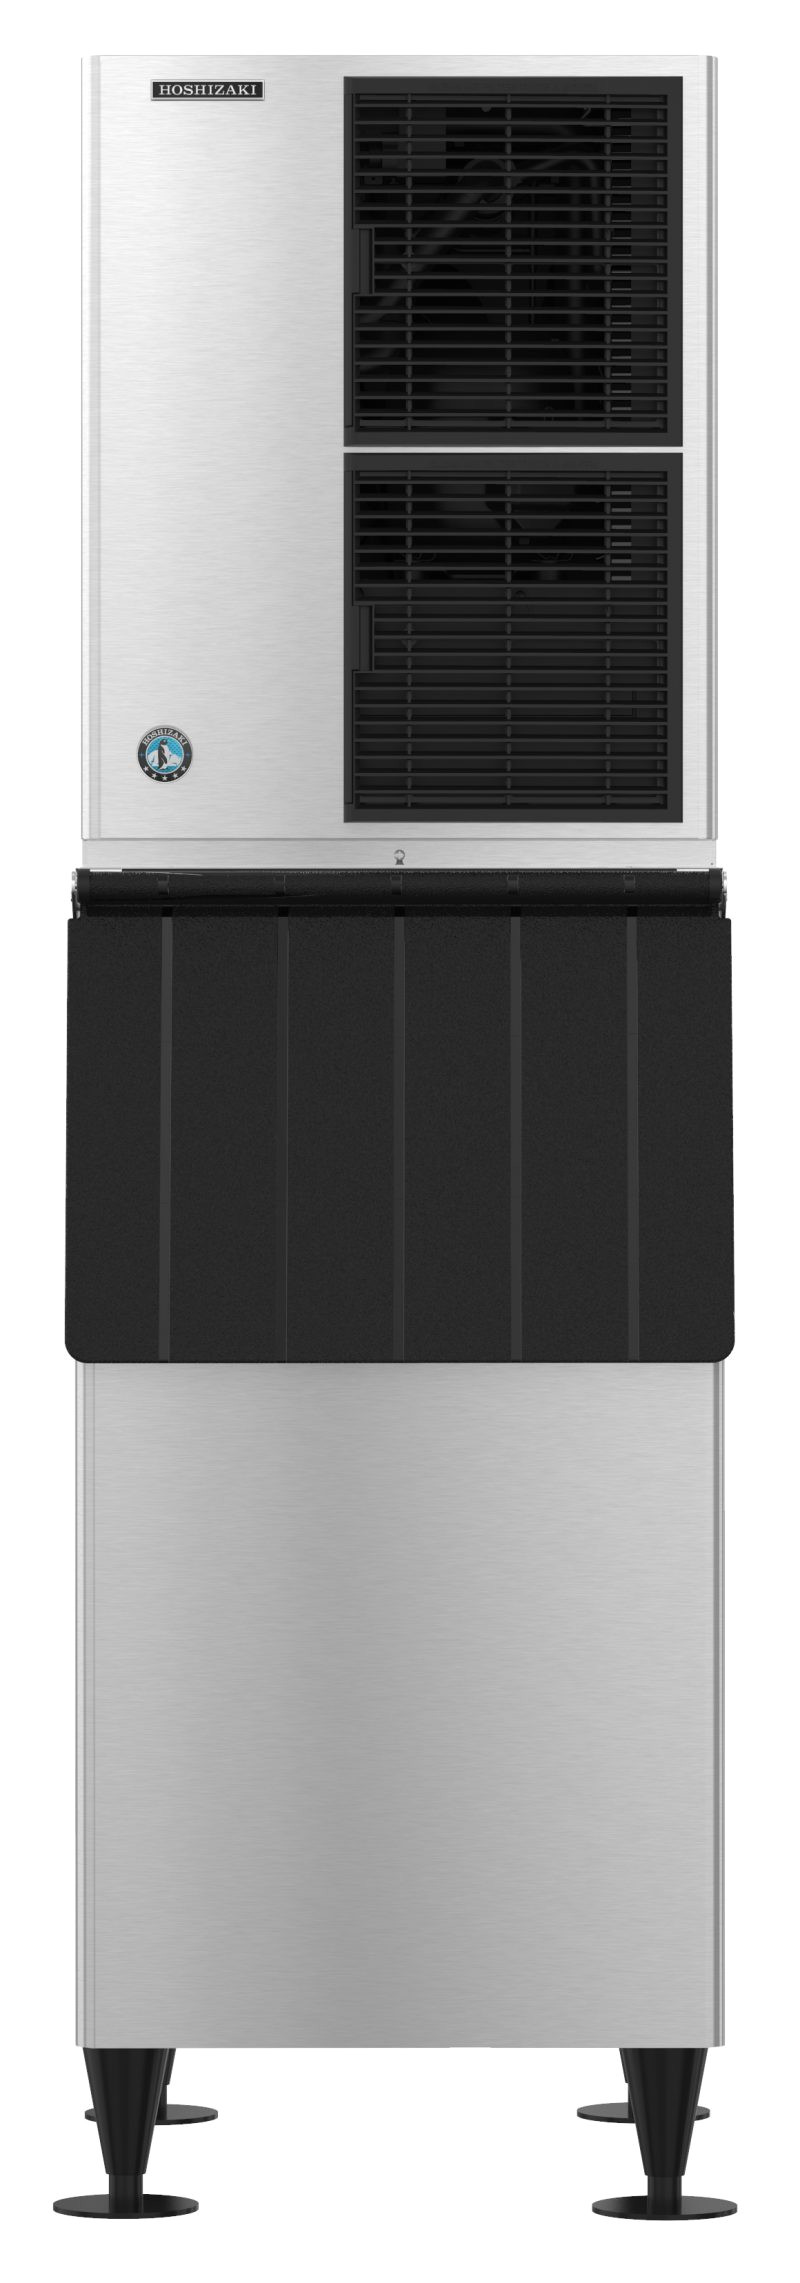 crescent cuber icemaker a air cooled